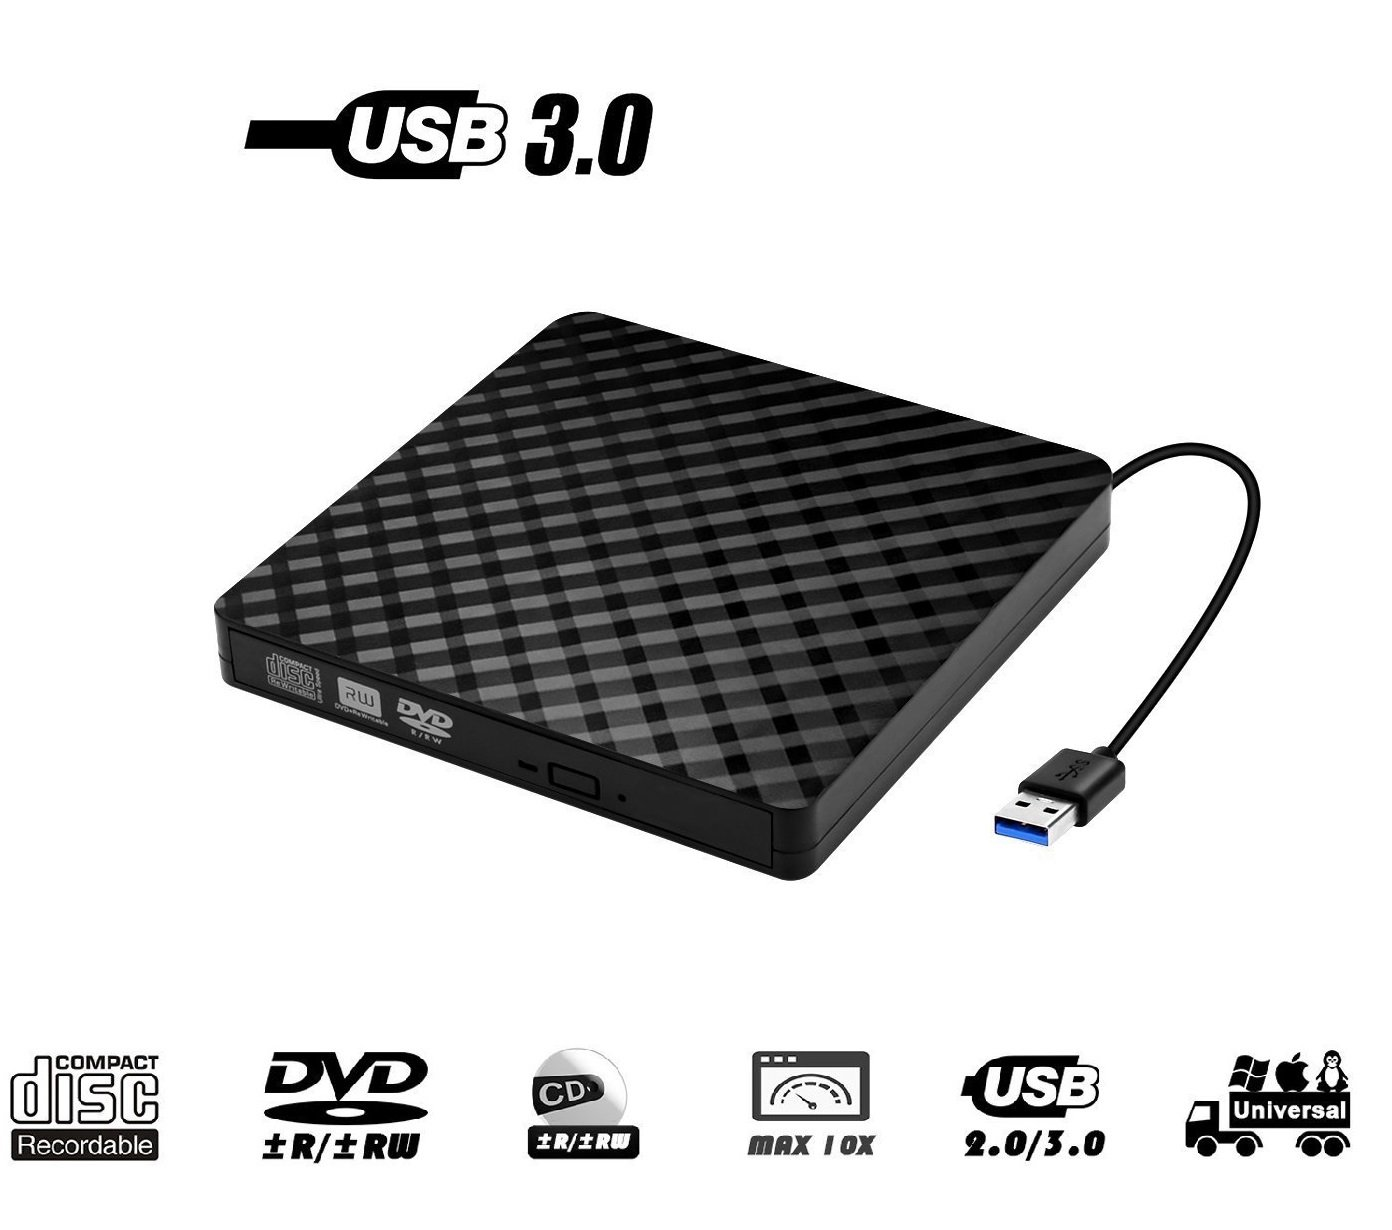 External DVD Drive, Fellee Portable Slim USB 3.0 DVD/CD Re-Writer Burner Superdrive, High Speed Data Transfer Optical +/-RW Drive (High Speed USB 3.0)